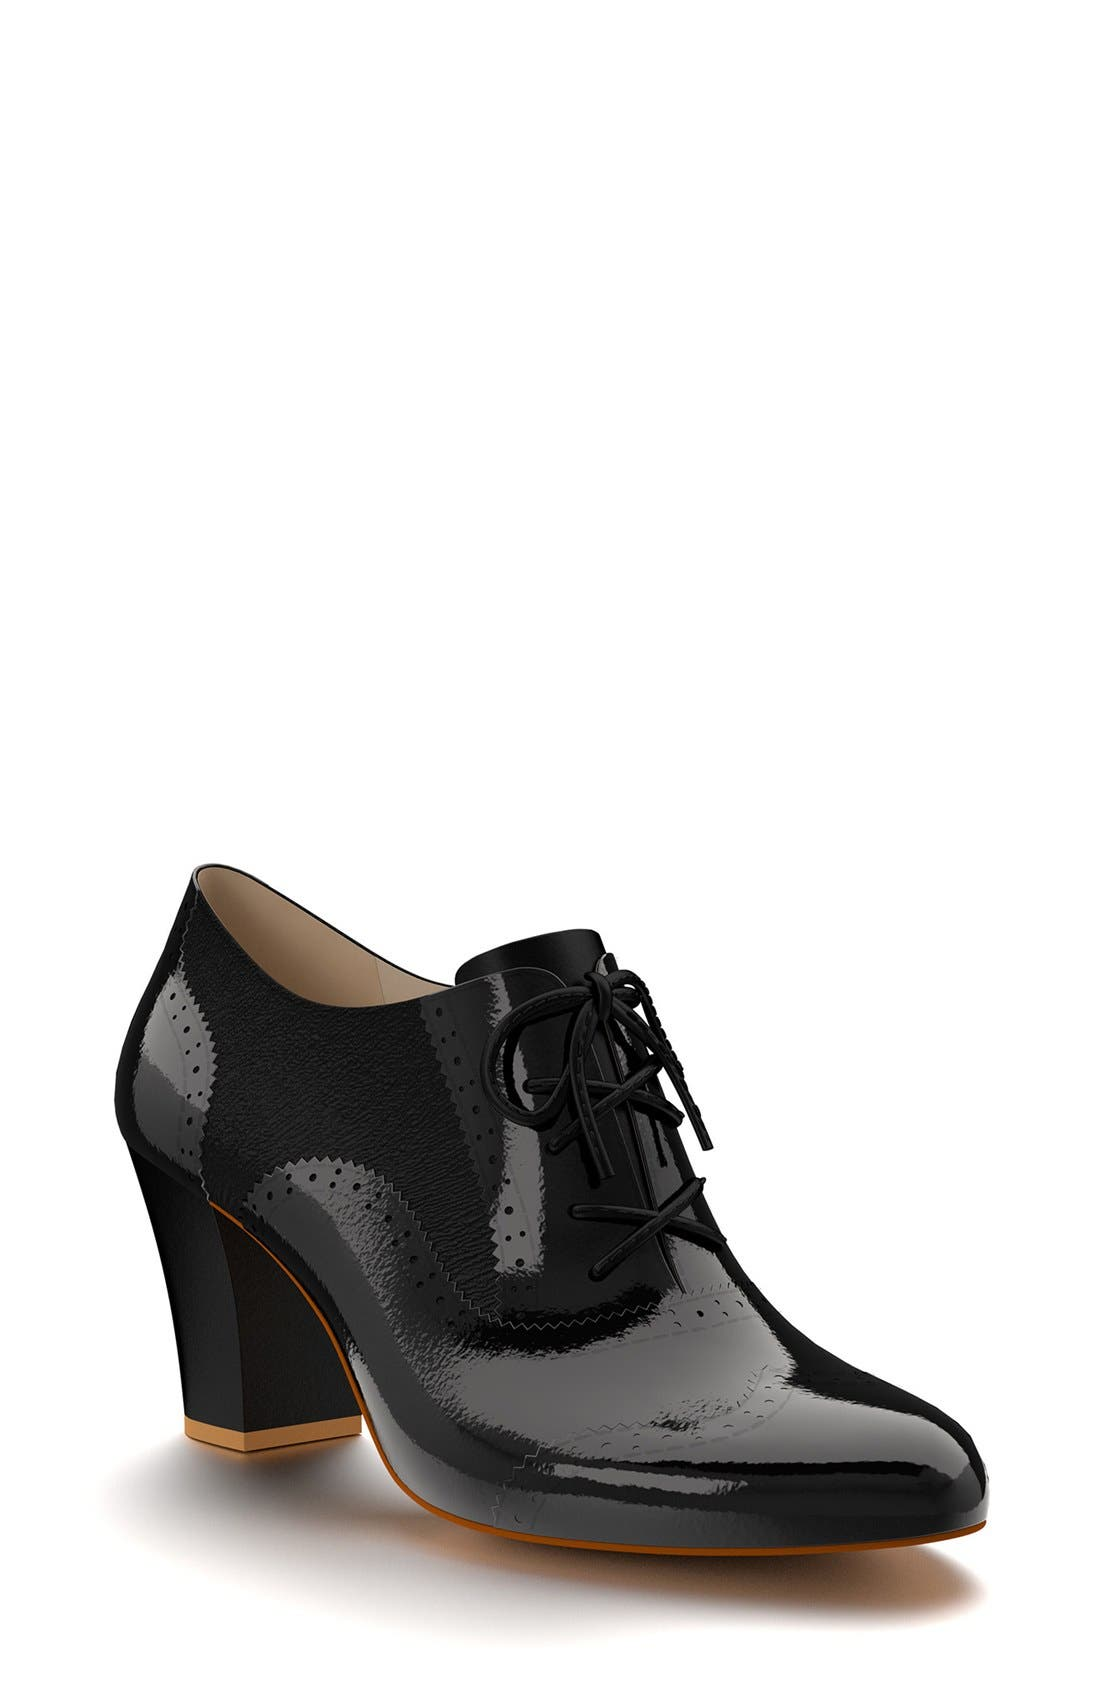 Main Image - Shoes of Prey Oxford Bootie (Women)